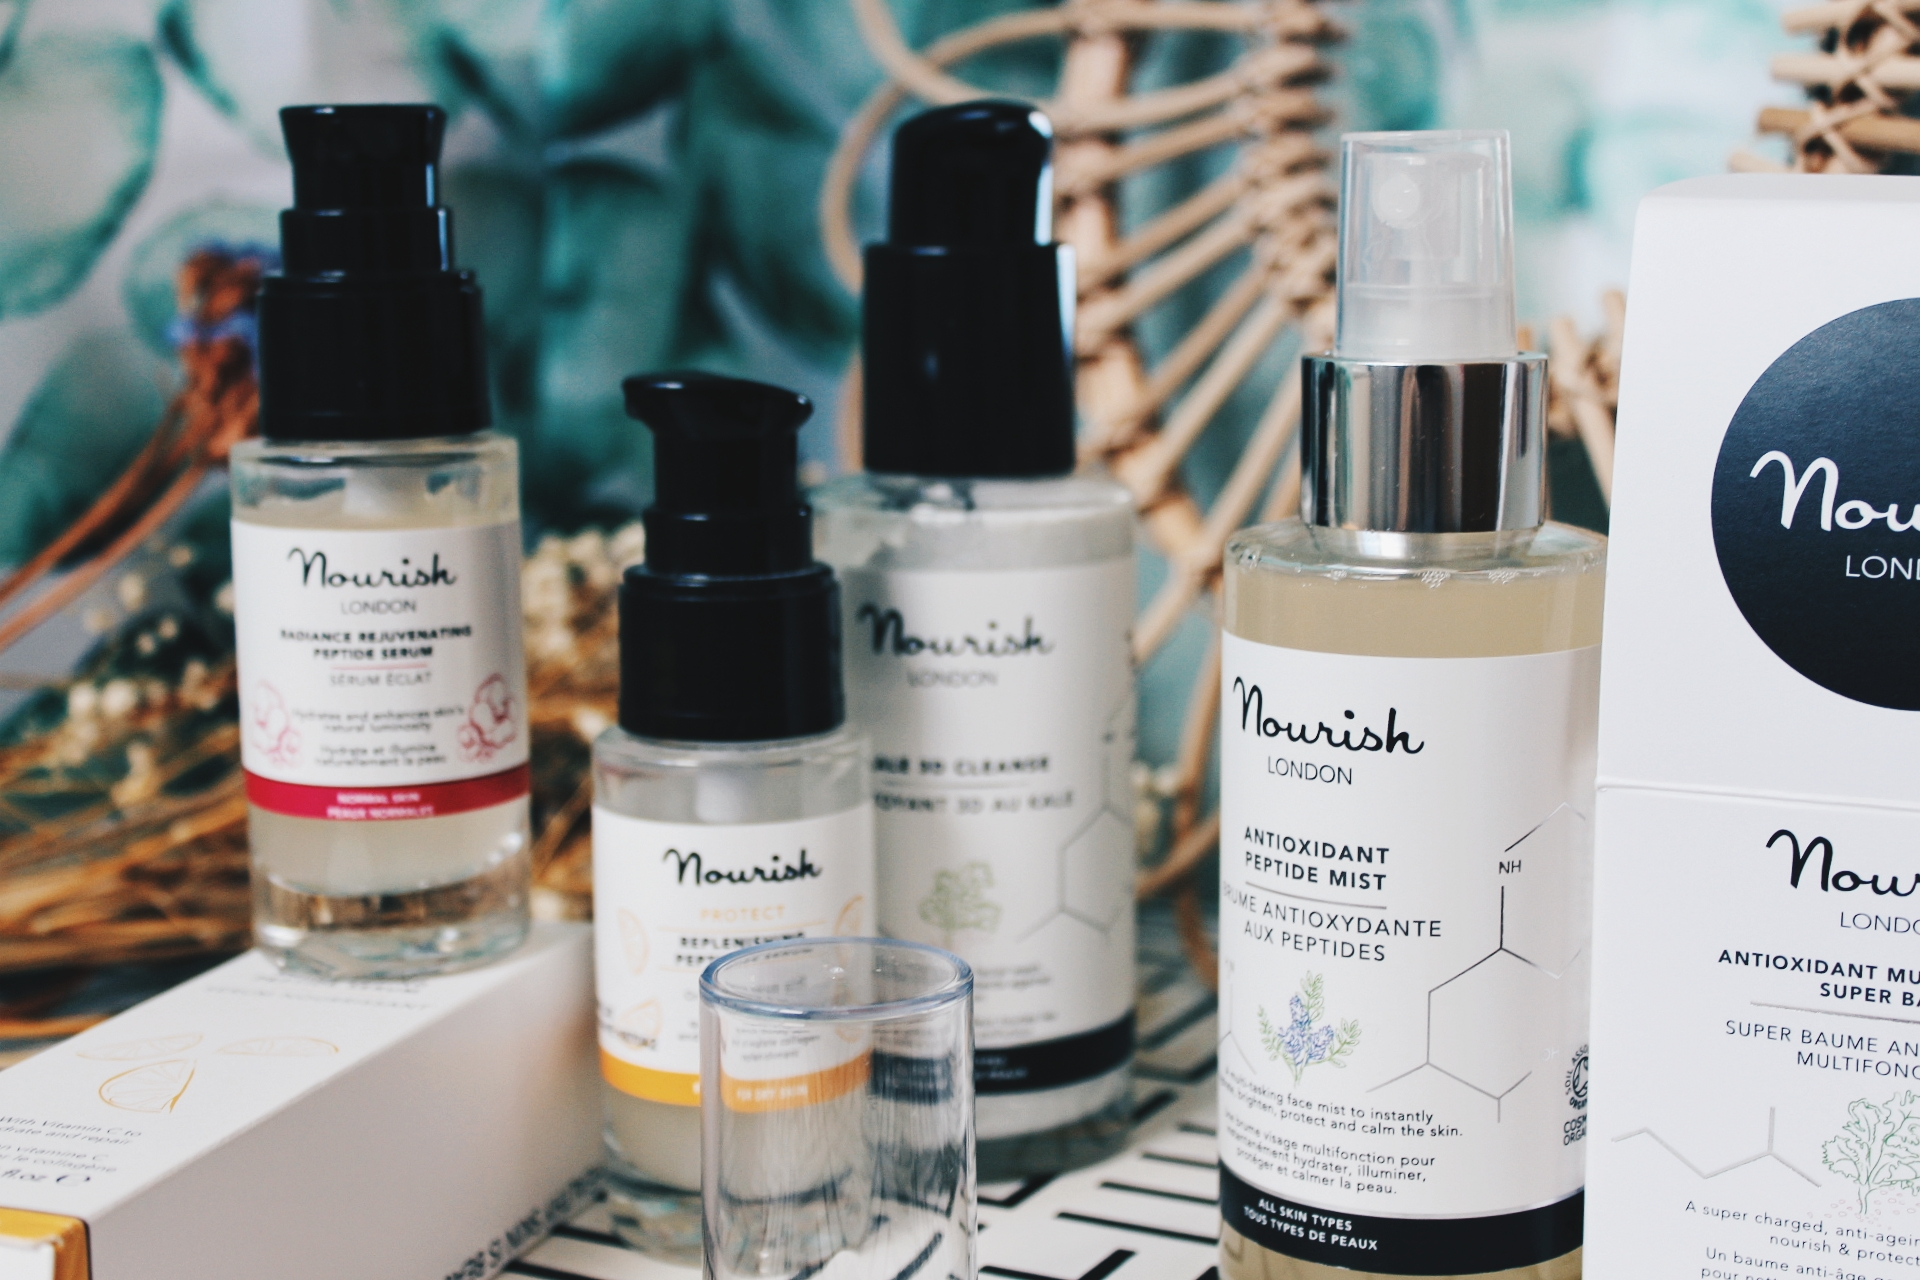 Five Products from Nourish London you should try